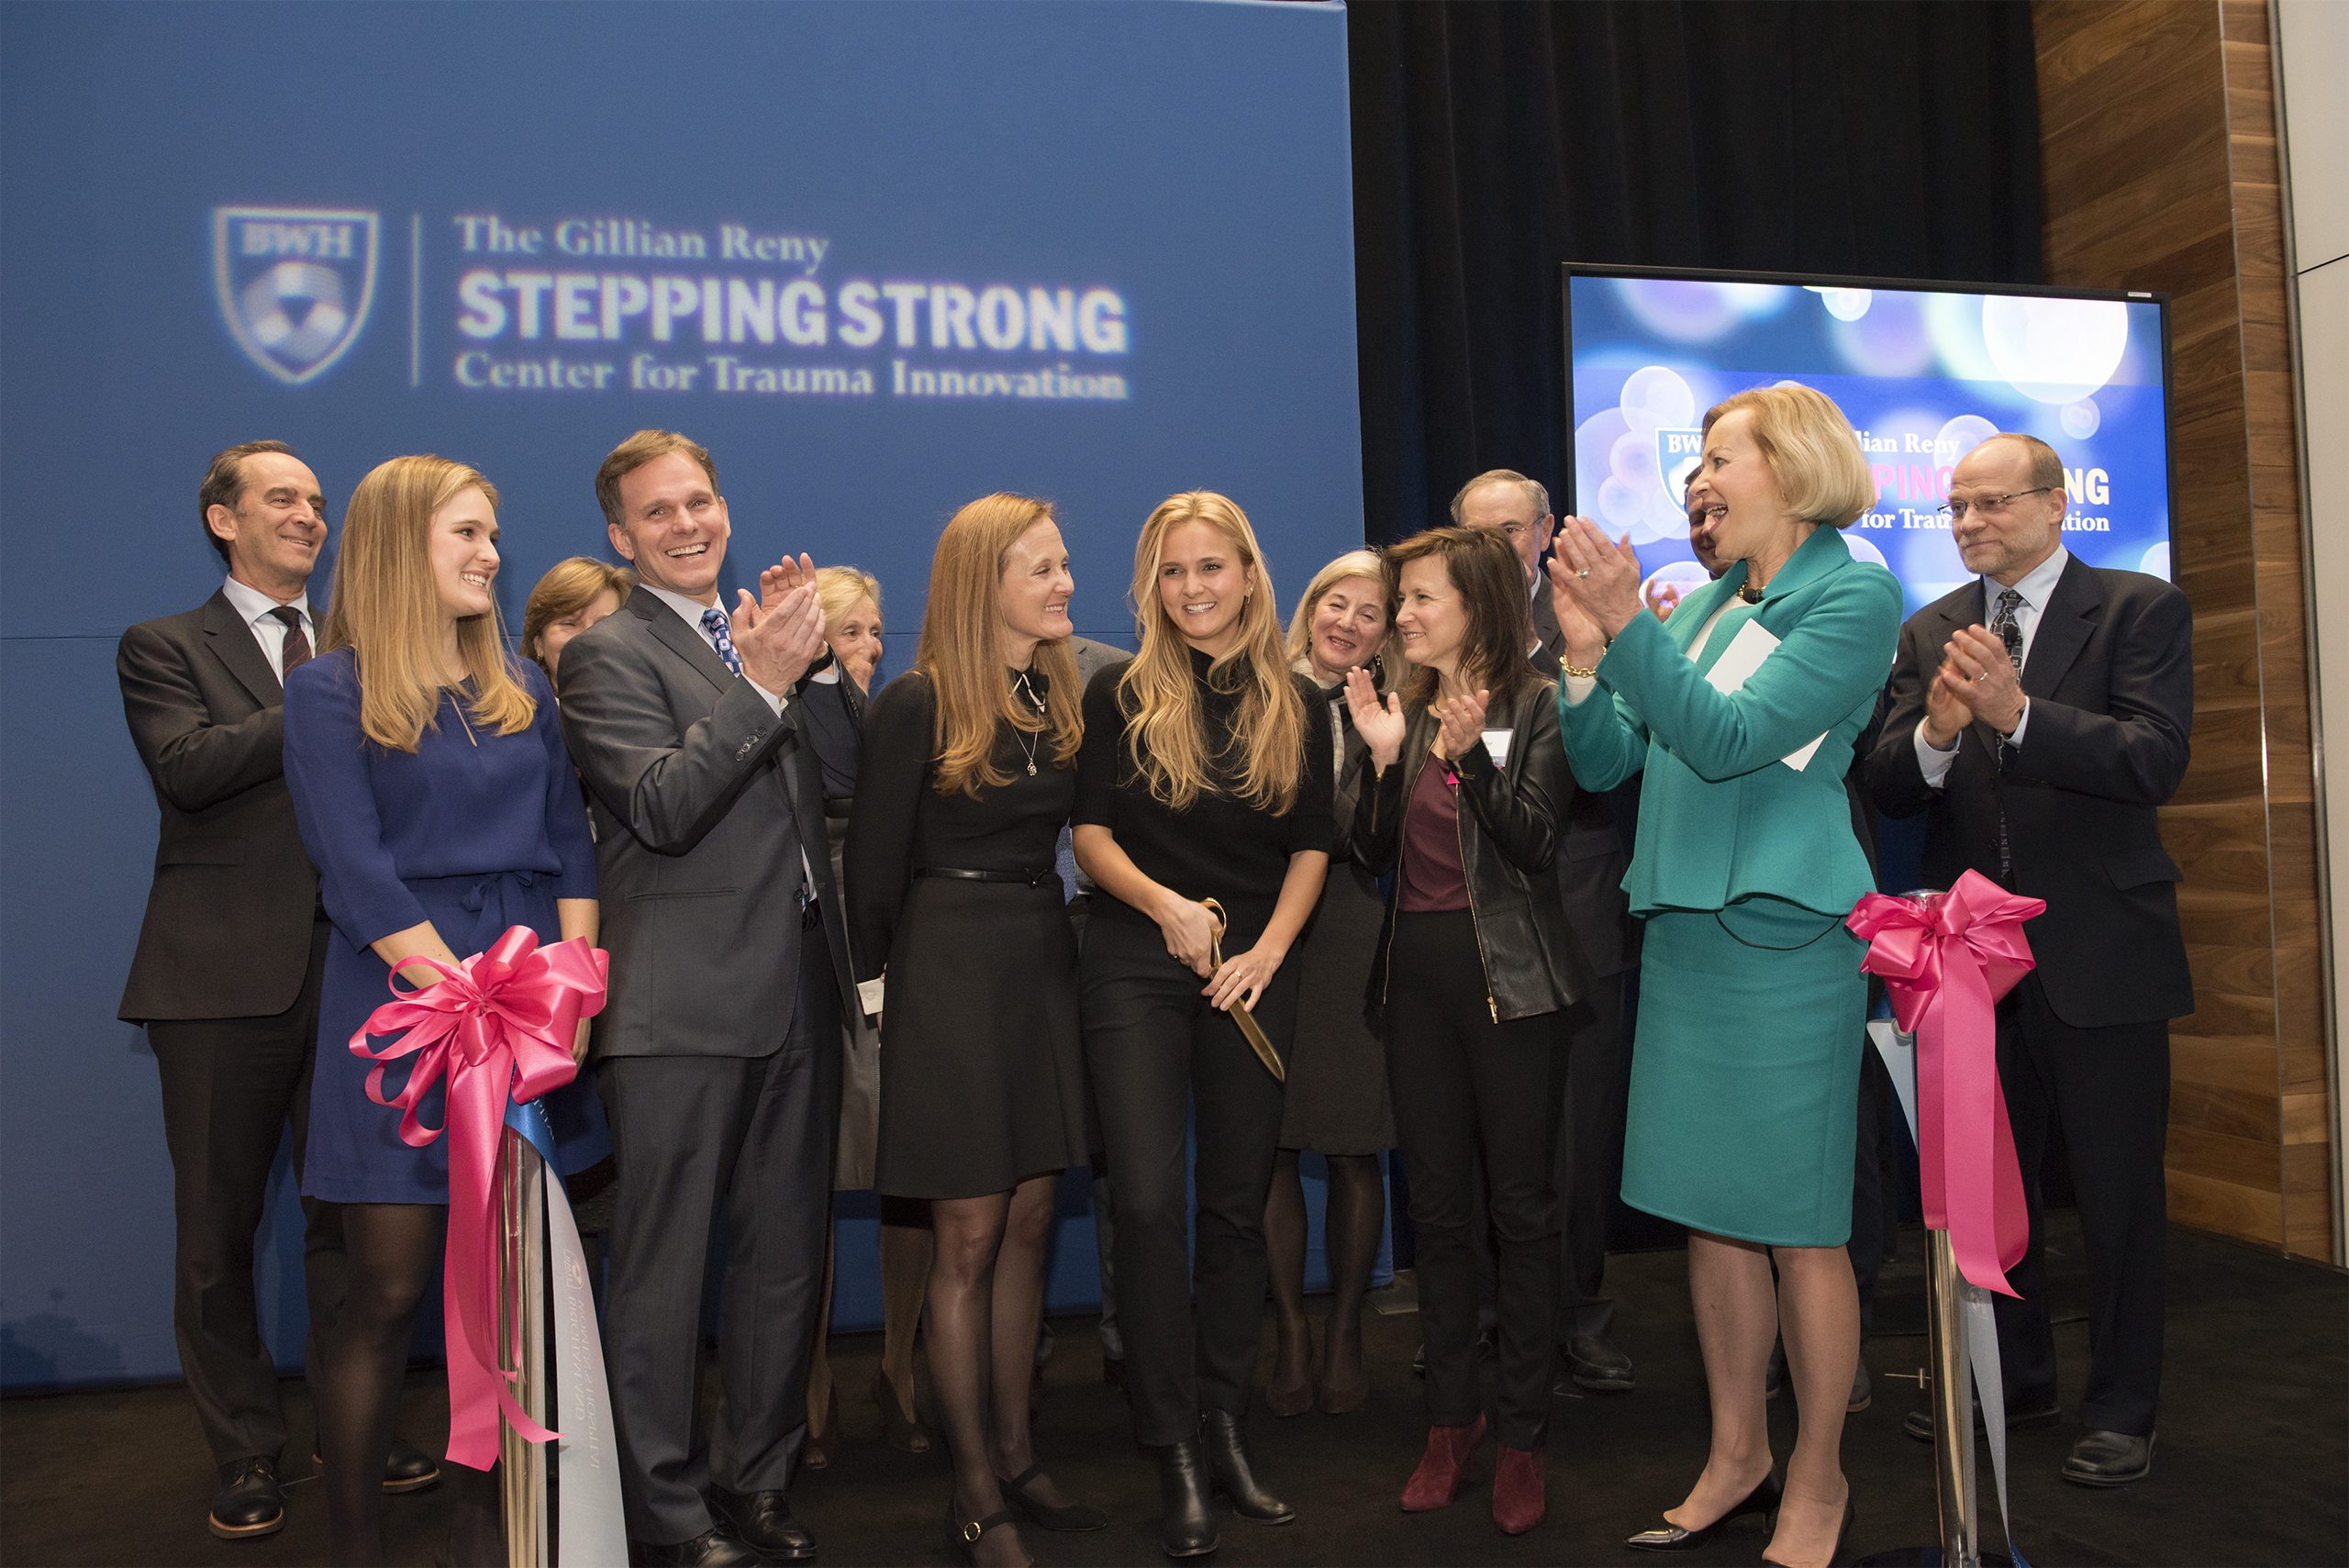 Audrey Reny Epstein And Her Family Celebrate The Establishment Of The Gillian Reny Stepping Strong Center For Trauma Innovation At Brigham And Women's Hospital